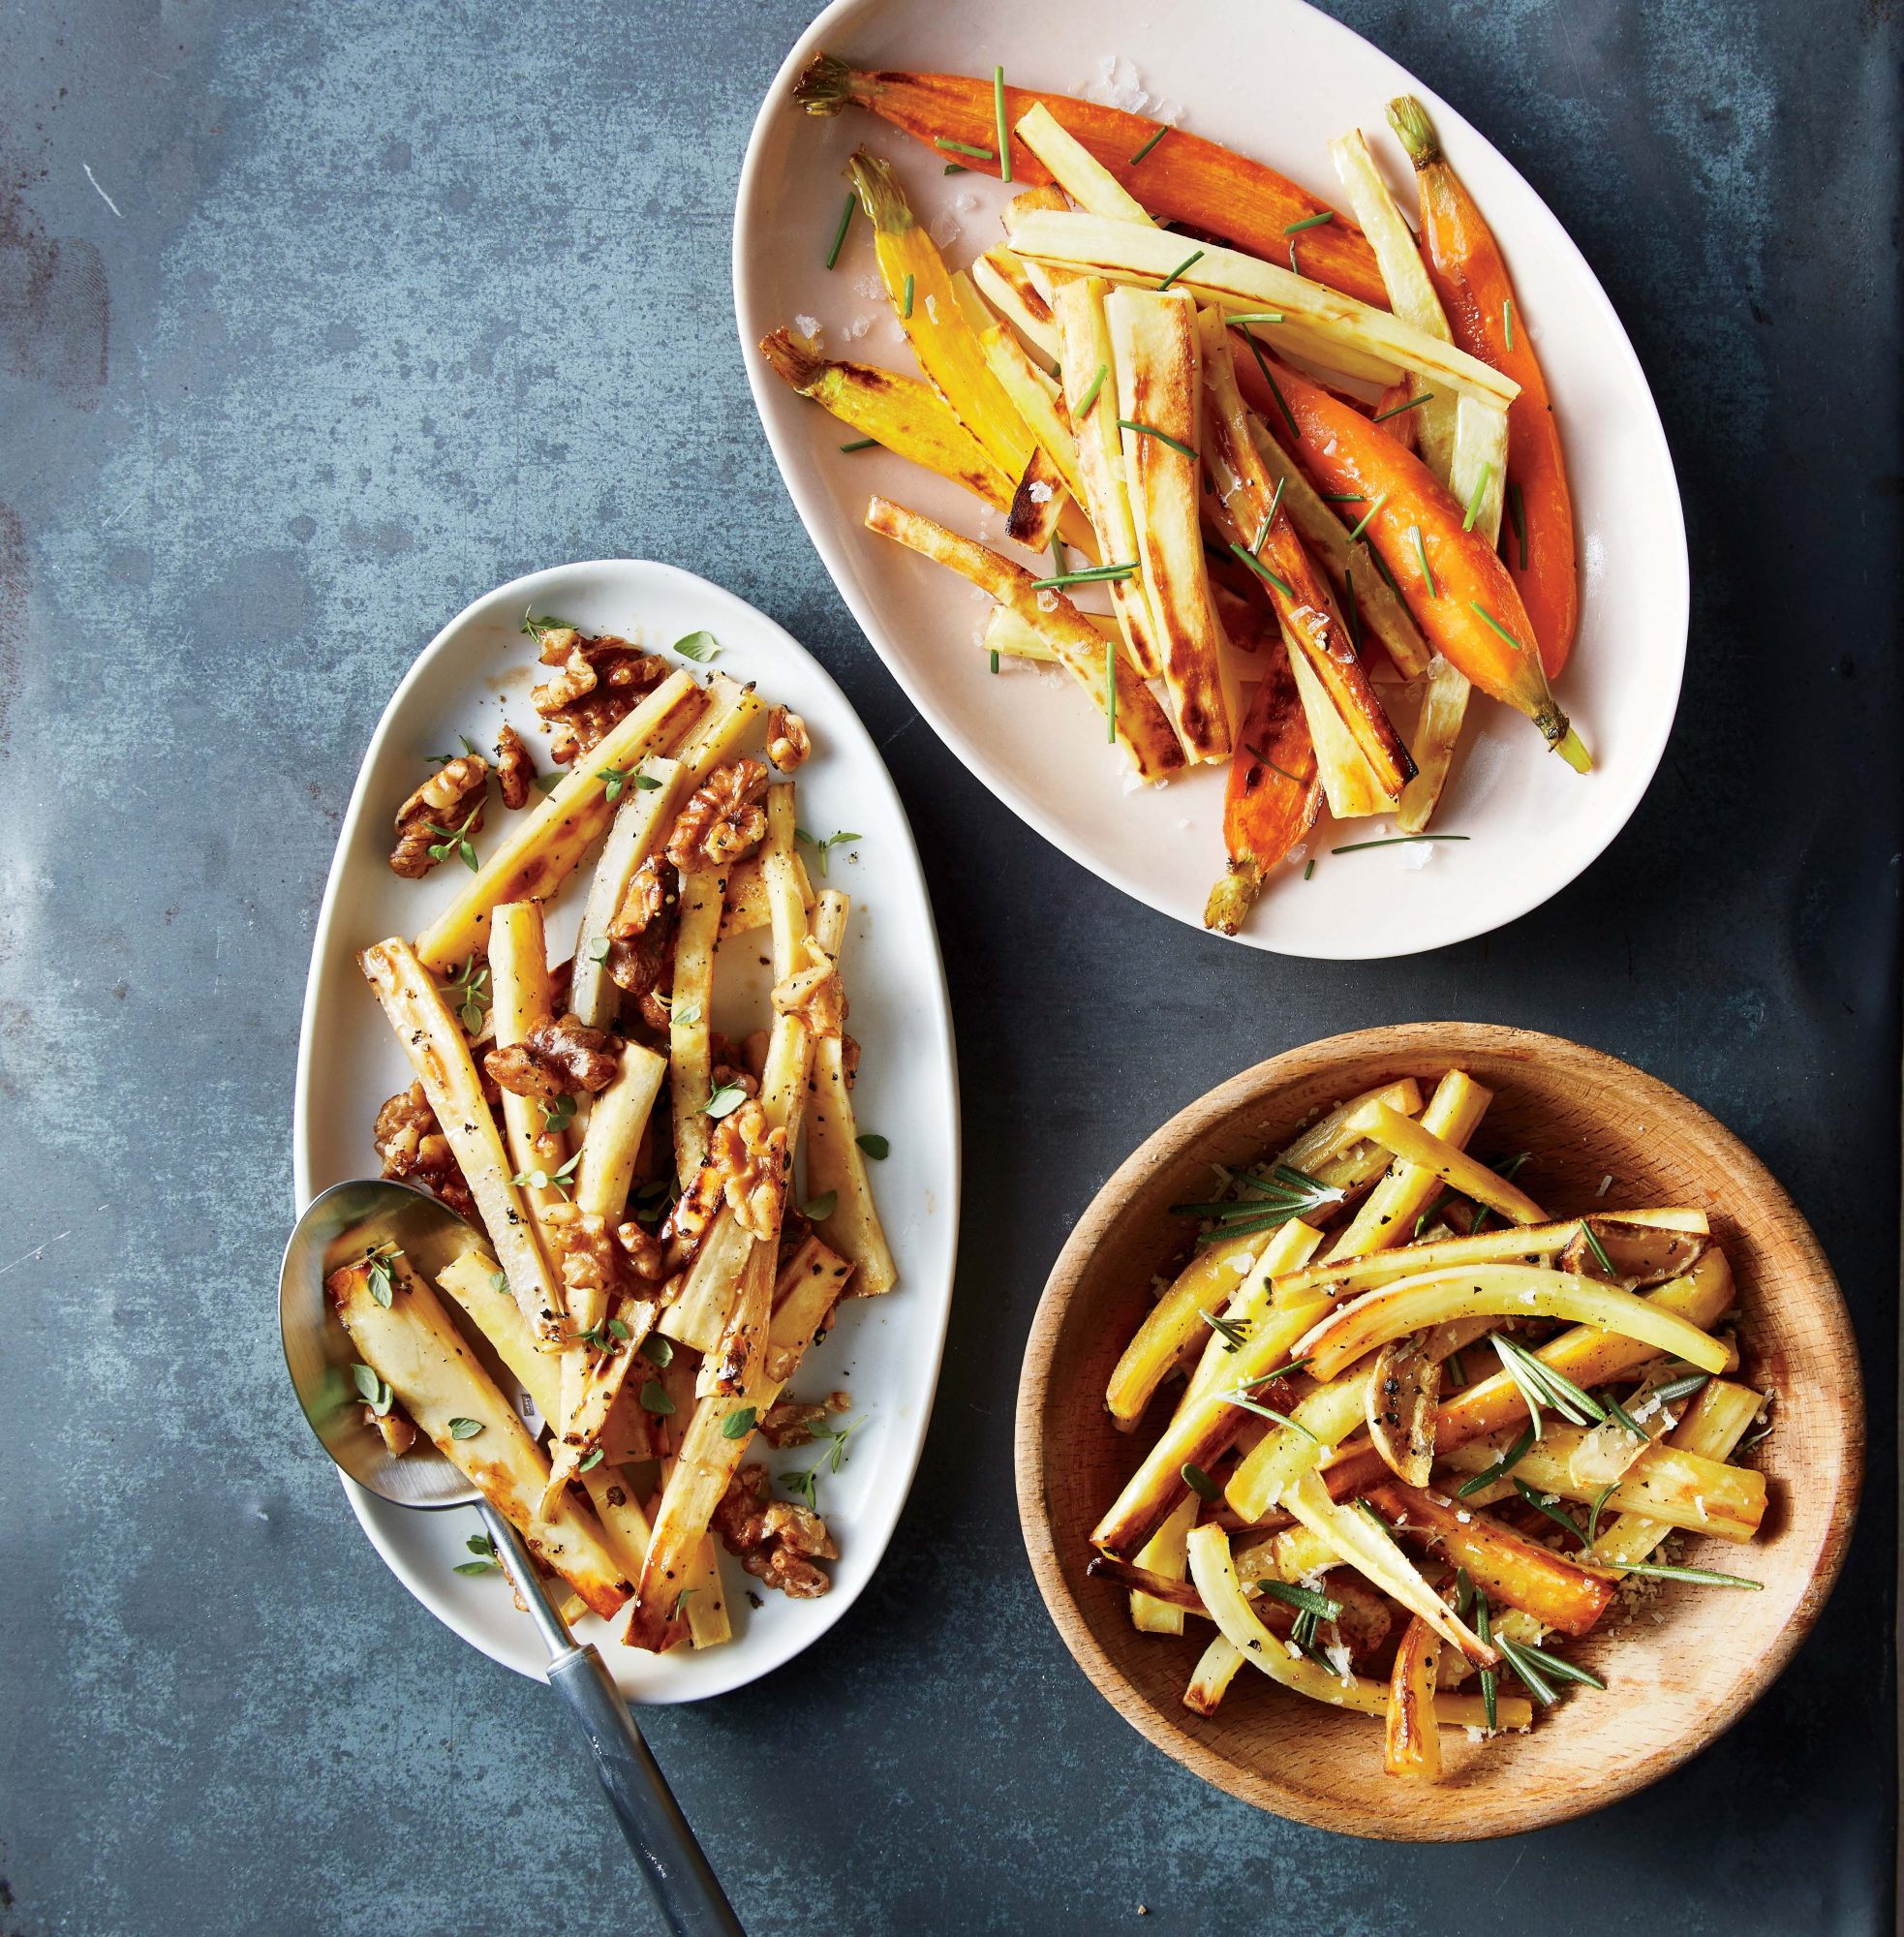 Roasted Parsnips with Walnuts, Maple, and Thyme